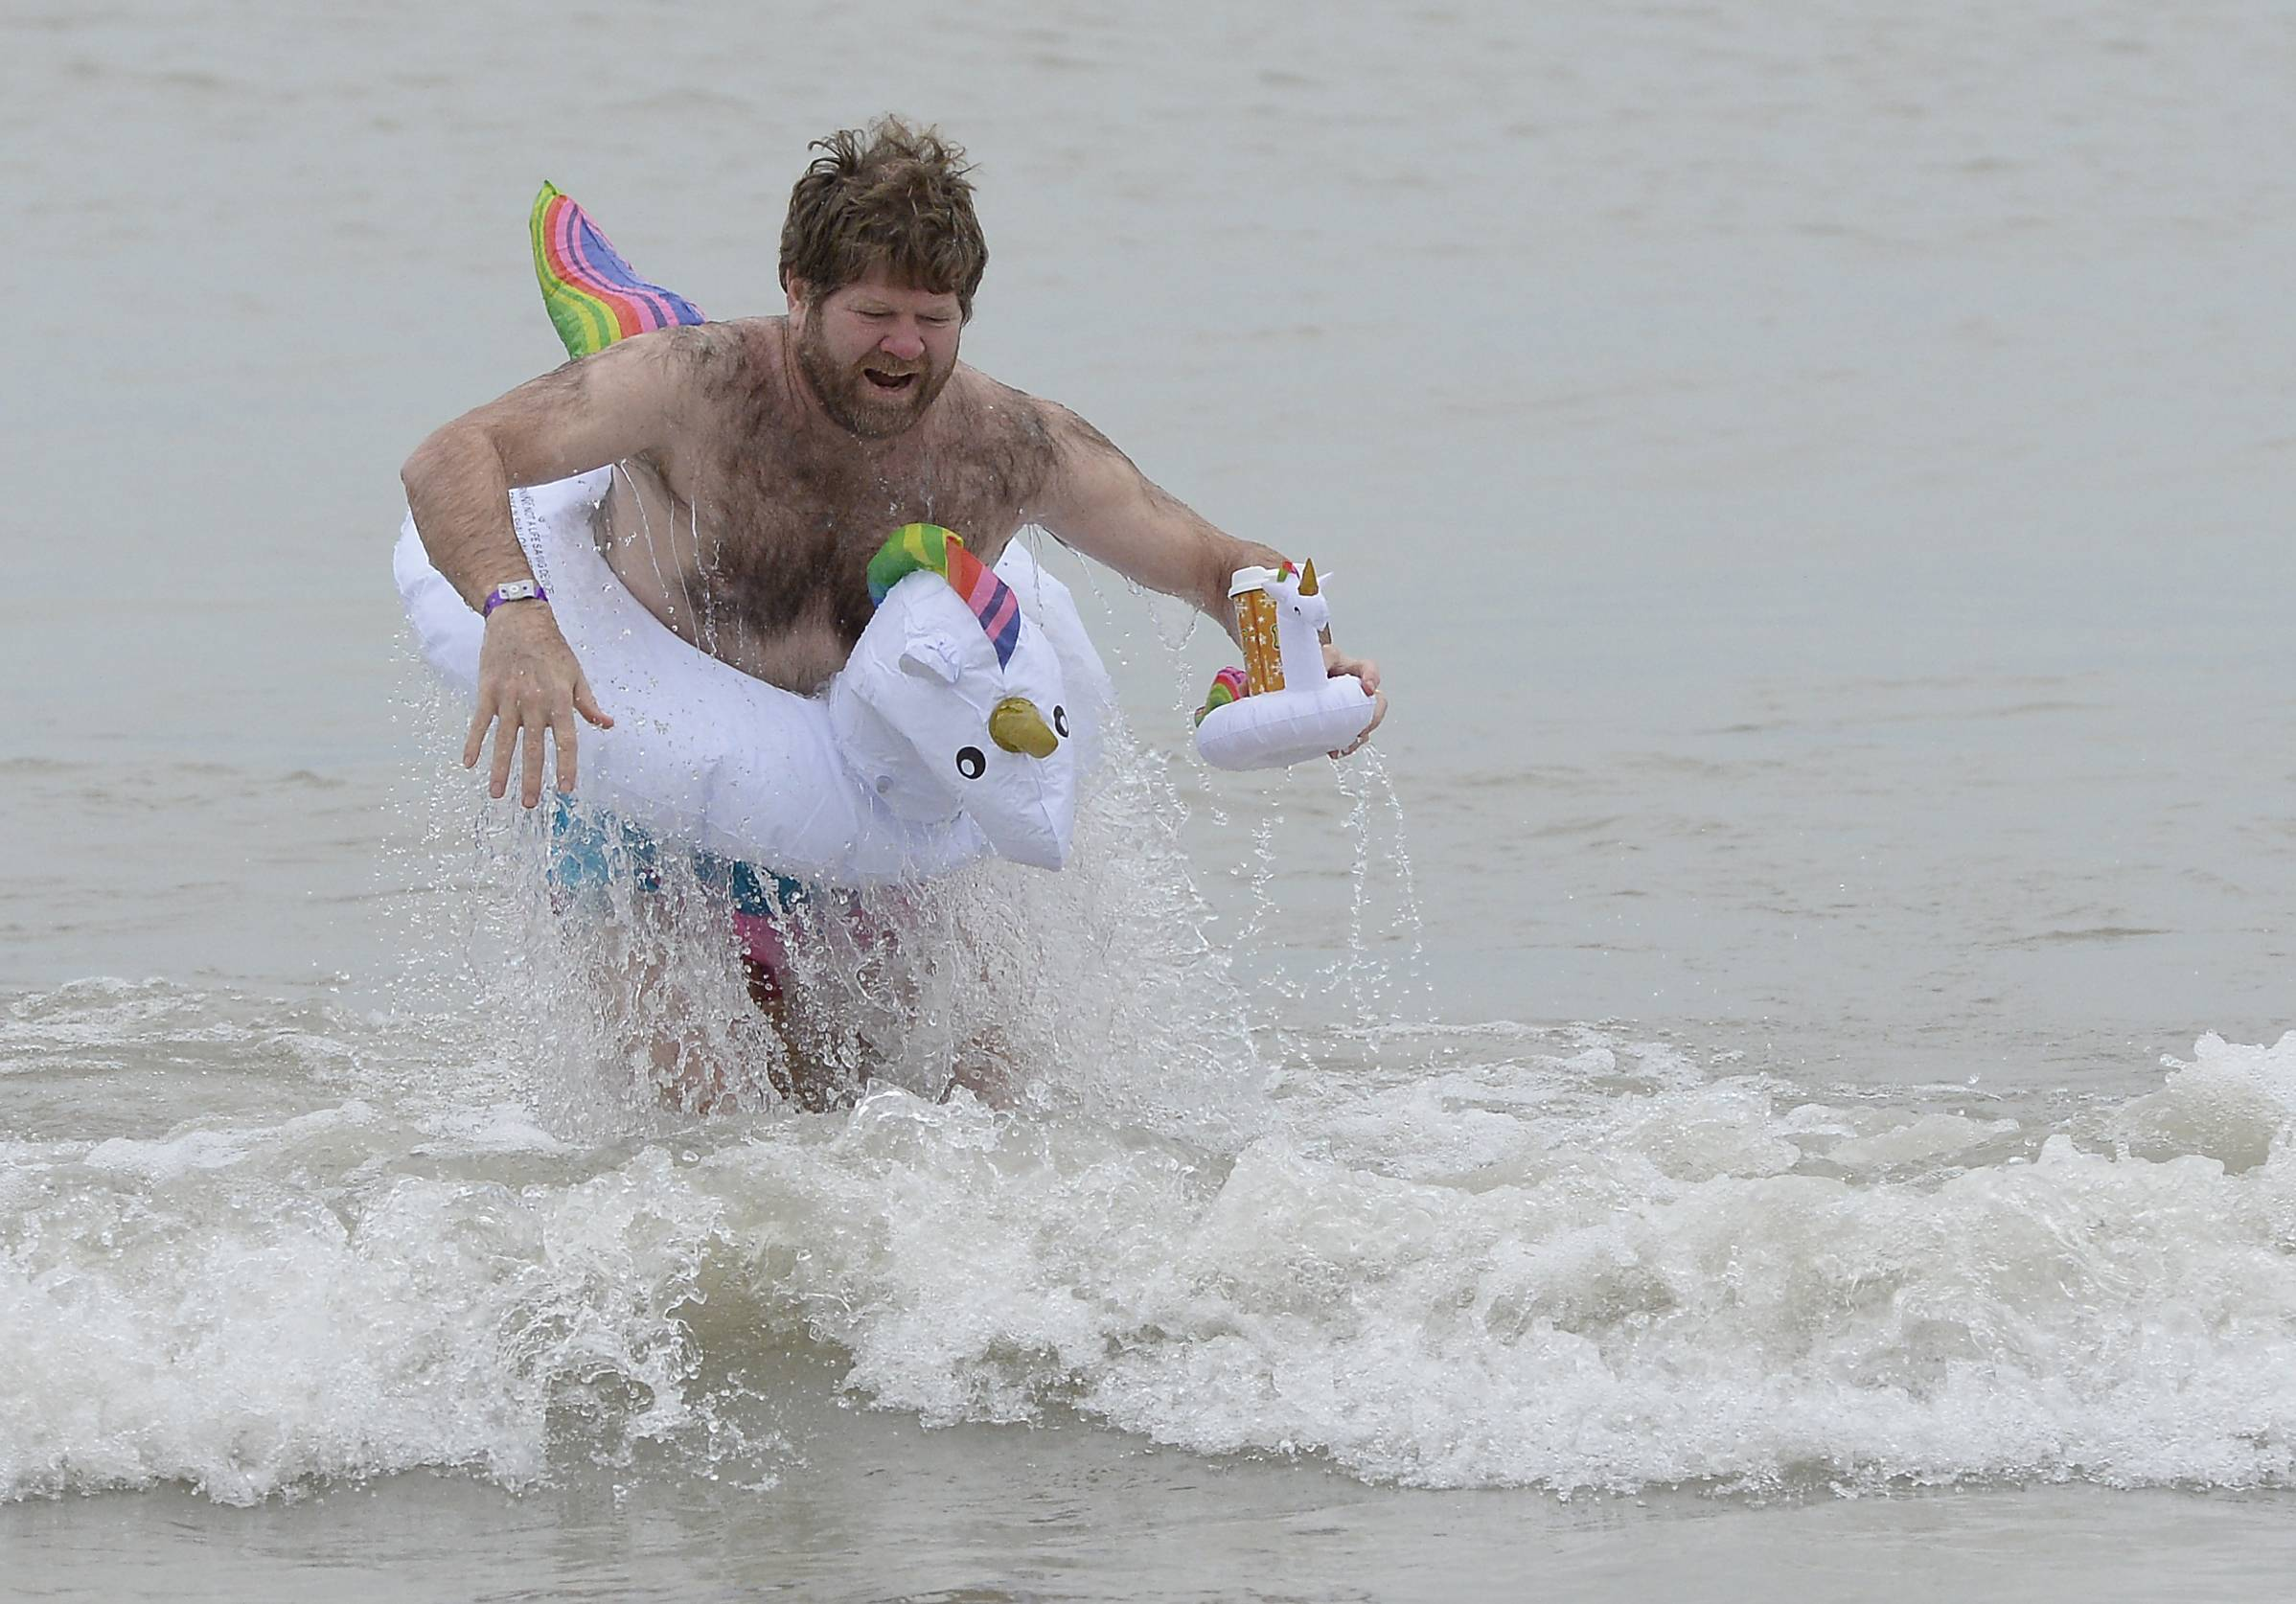 Libertyville resident Robert Zanze was among more than 100 hardy souls who braved the cold waters of Lake Michigan on Tuesday for the 20th annual Polar Bear Plunge to raise funds for Waukegan Special Recreation Services helping individuals with disabilities.